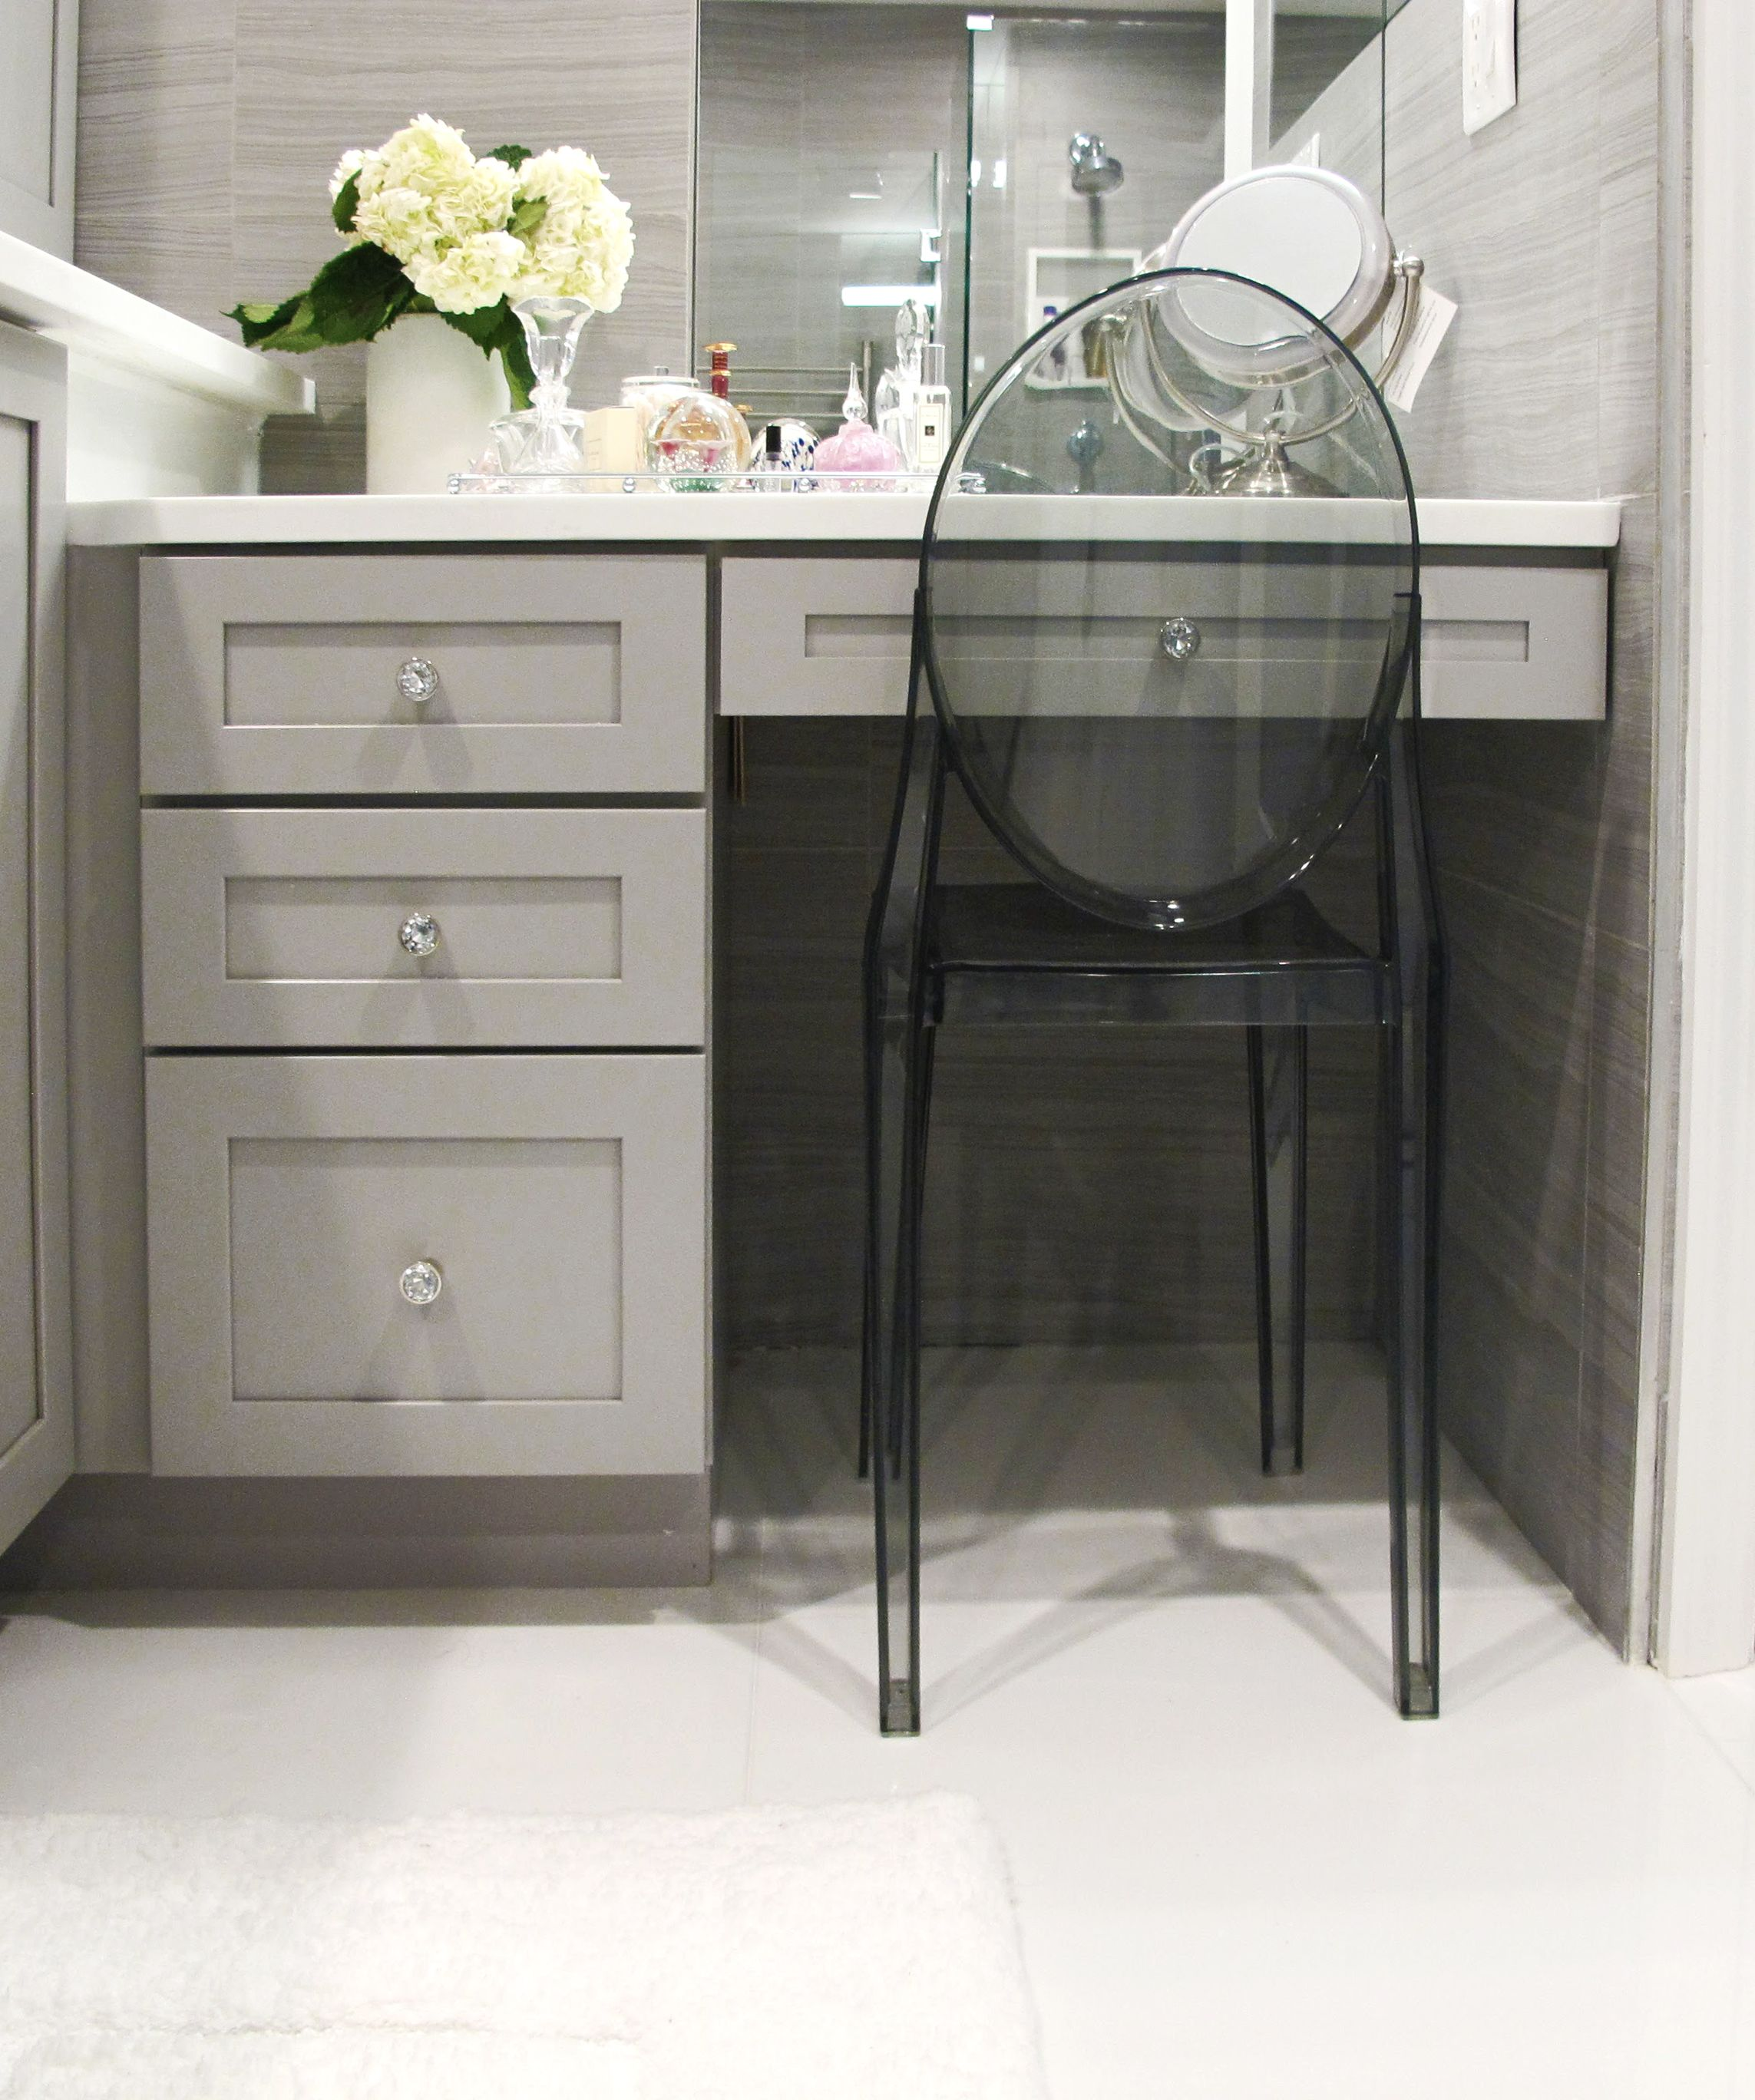 Modern Bathroom Makeup Vanity, Kraftmaid  Bathroom with makeup